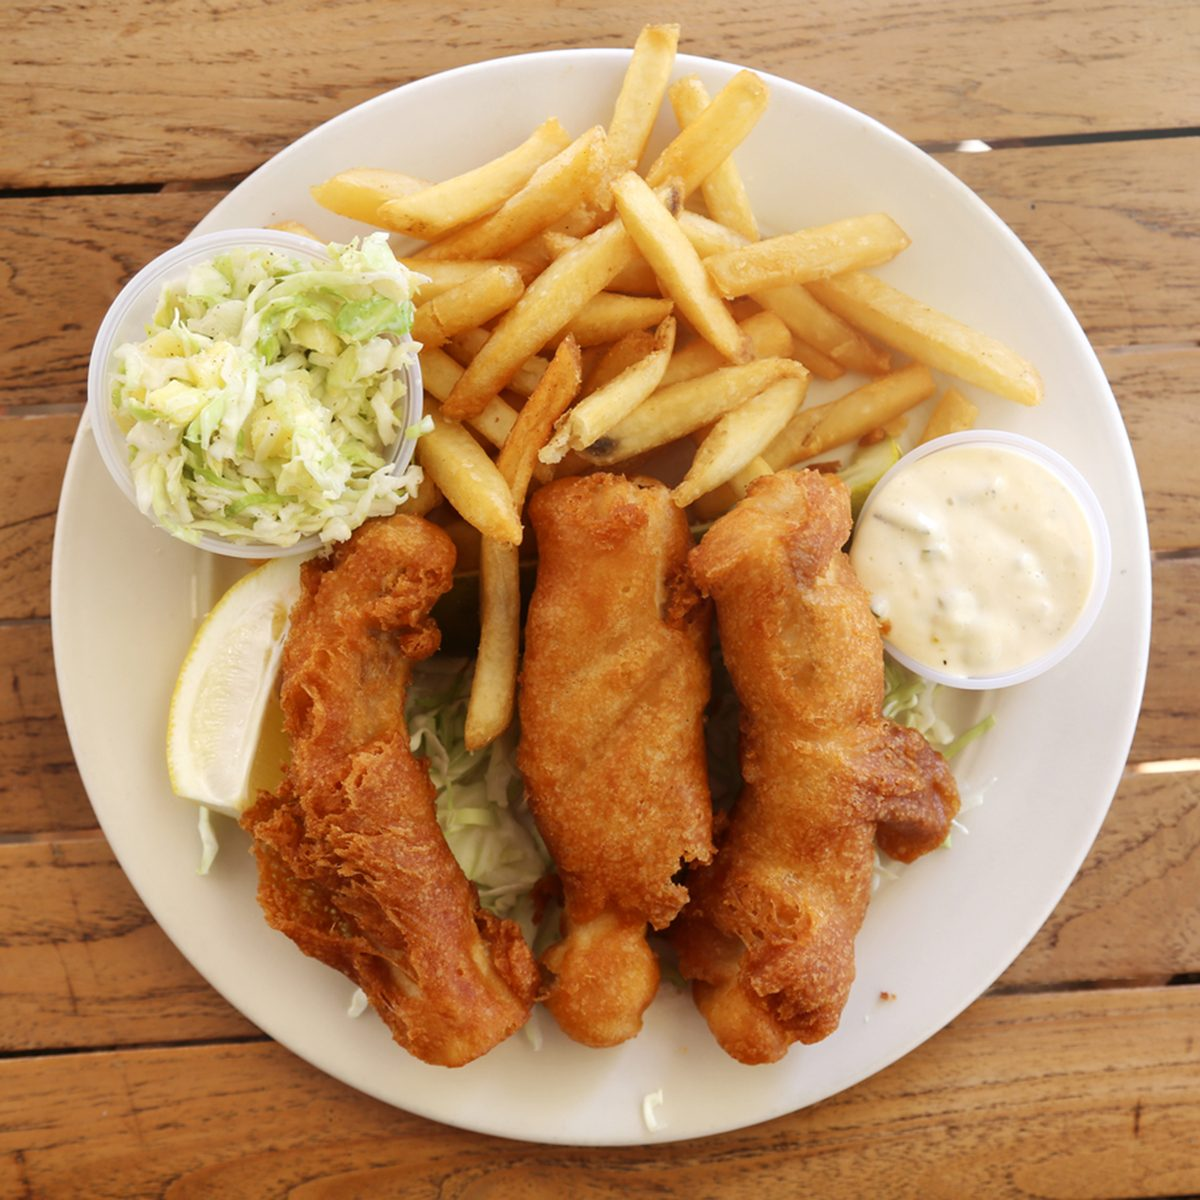 fish and chips with French fries and pineapple coleslaw on a white plate on a wooden table.